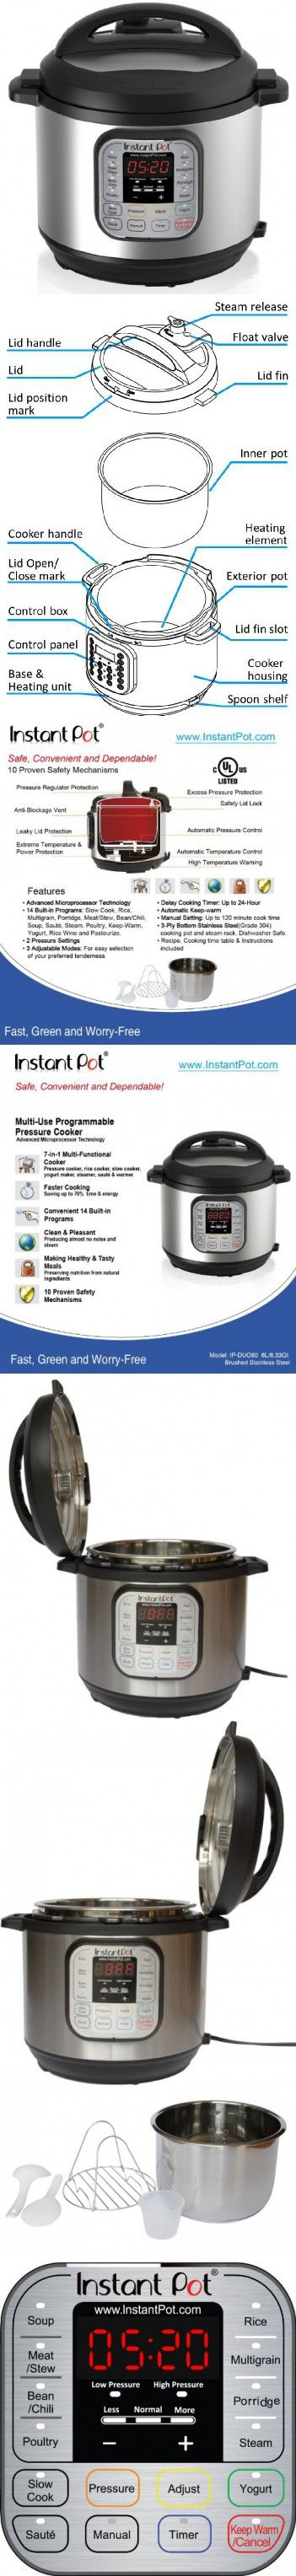 Instant Pot DUO60 7-in-1 Multi-Use Programmable Pressure Cooker, 6 Qt   Stainless Steel